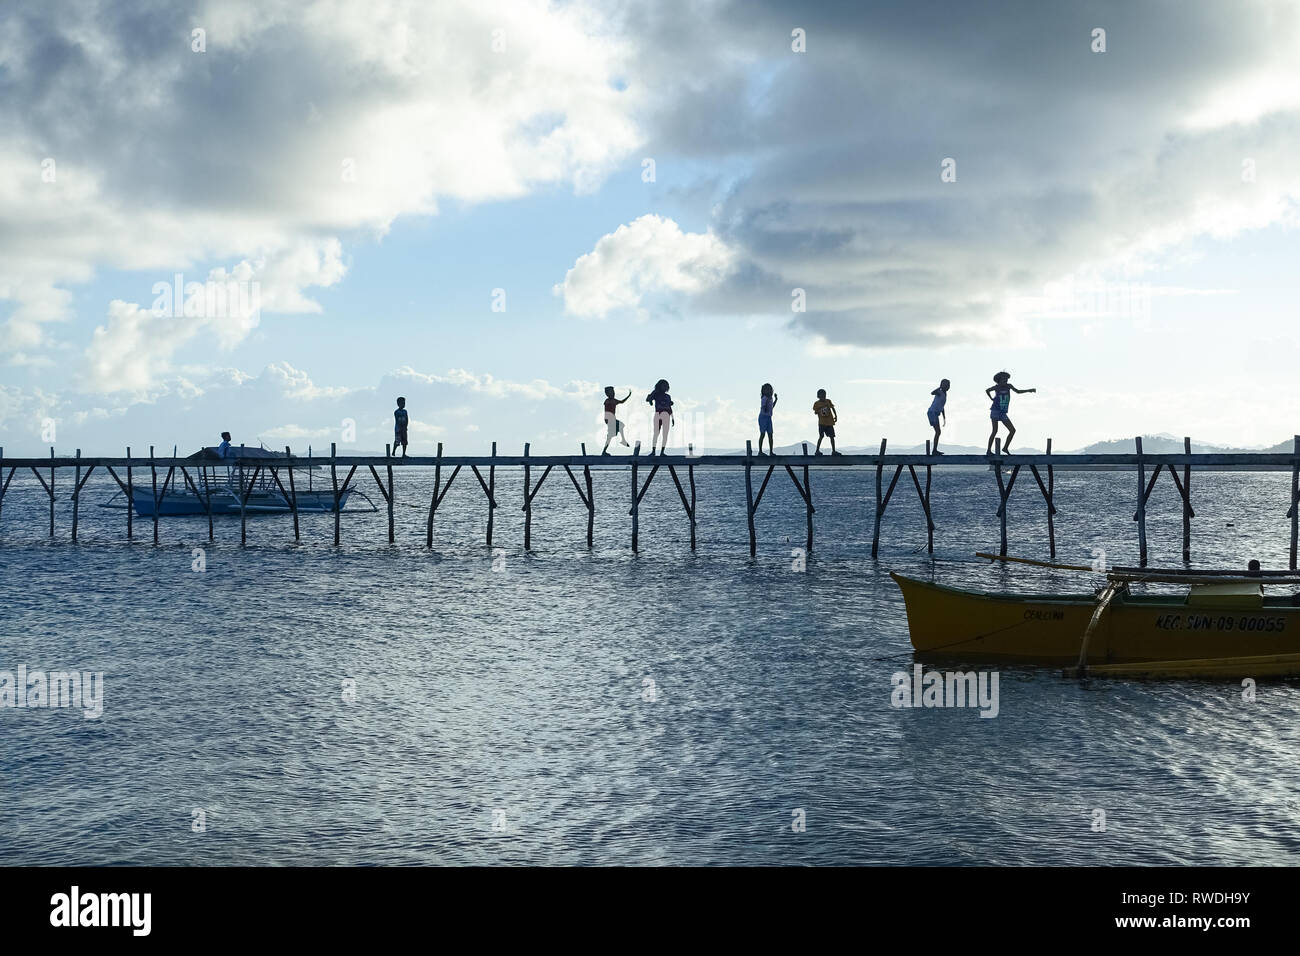 Dancing and Playing Children on Island Pier, General Luna -Siargao, Philippines Stock Photo